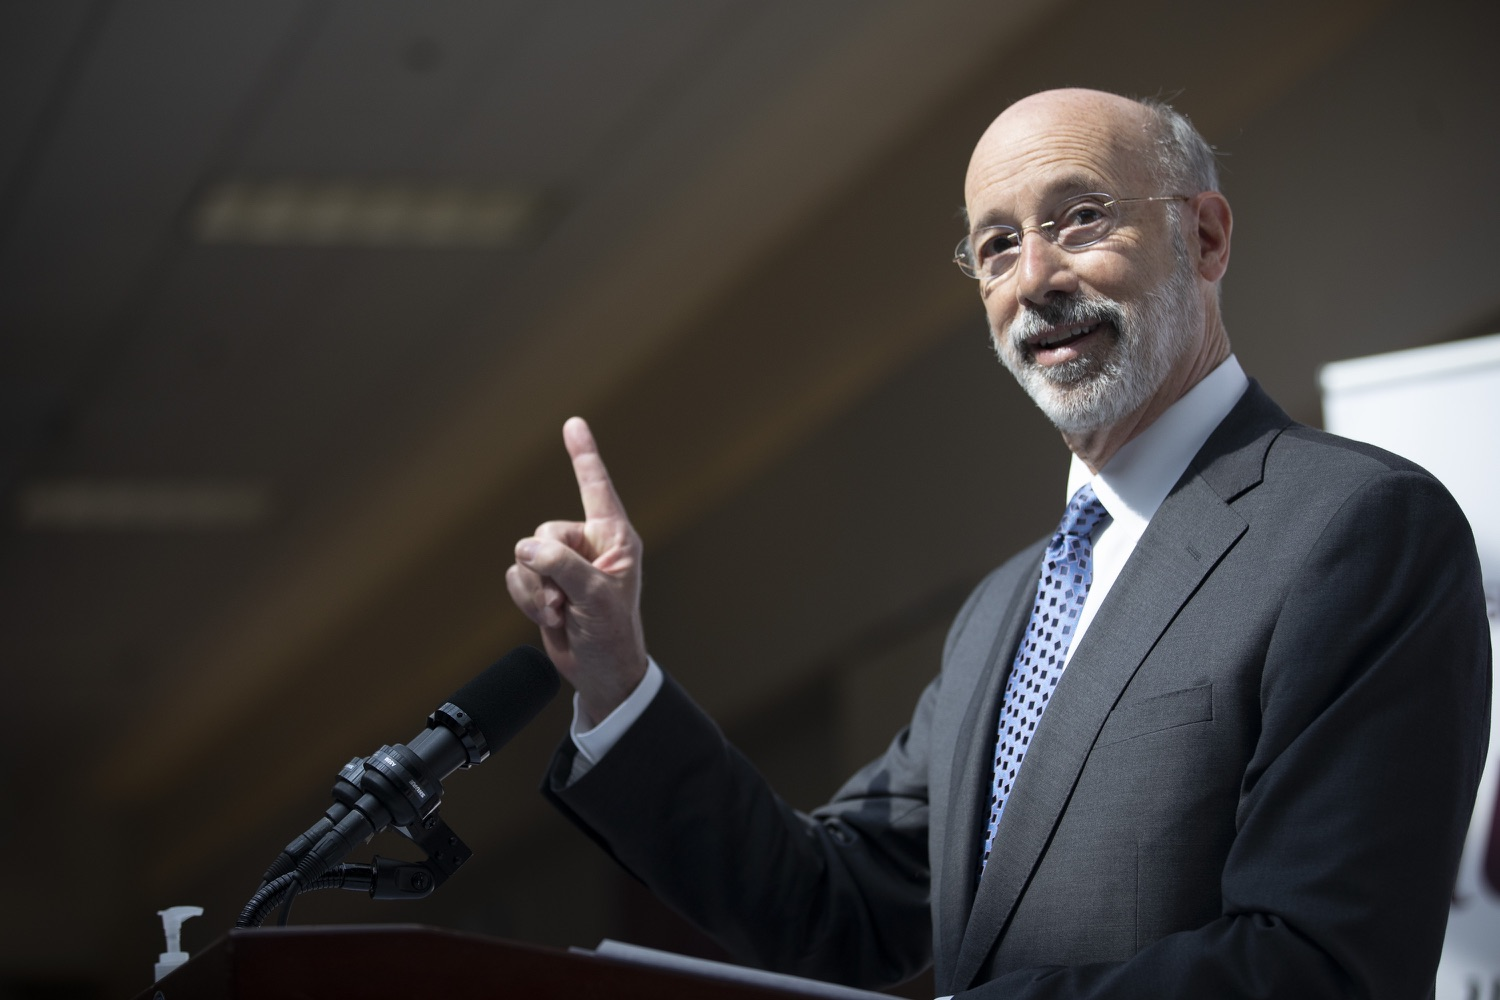 "<a href=""https://filesource.wostreaming.net/commonwealthofpa/photo/18712_gov_vaccines_dz_001.jpg"" target=""_blank"">⇣ Download Photo<br></a>Pennsylvania Governor Tom Wolf speaking with the press.  Continuing to visit COVID-19 vaccine clinics around the state, Governor Tom Wolf toured a clinic at the Washington Crown Center in Washington County today. The clinic is one of three operated by the Washington Health System (WHS) serving rural communities in southwestern Pennsylvania.  North Franklin Township, PA  April 28, 2021"